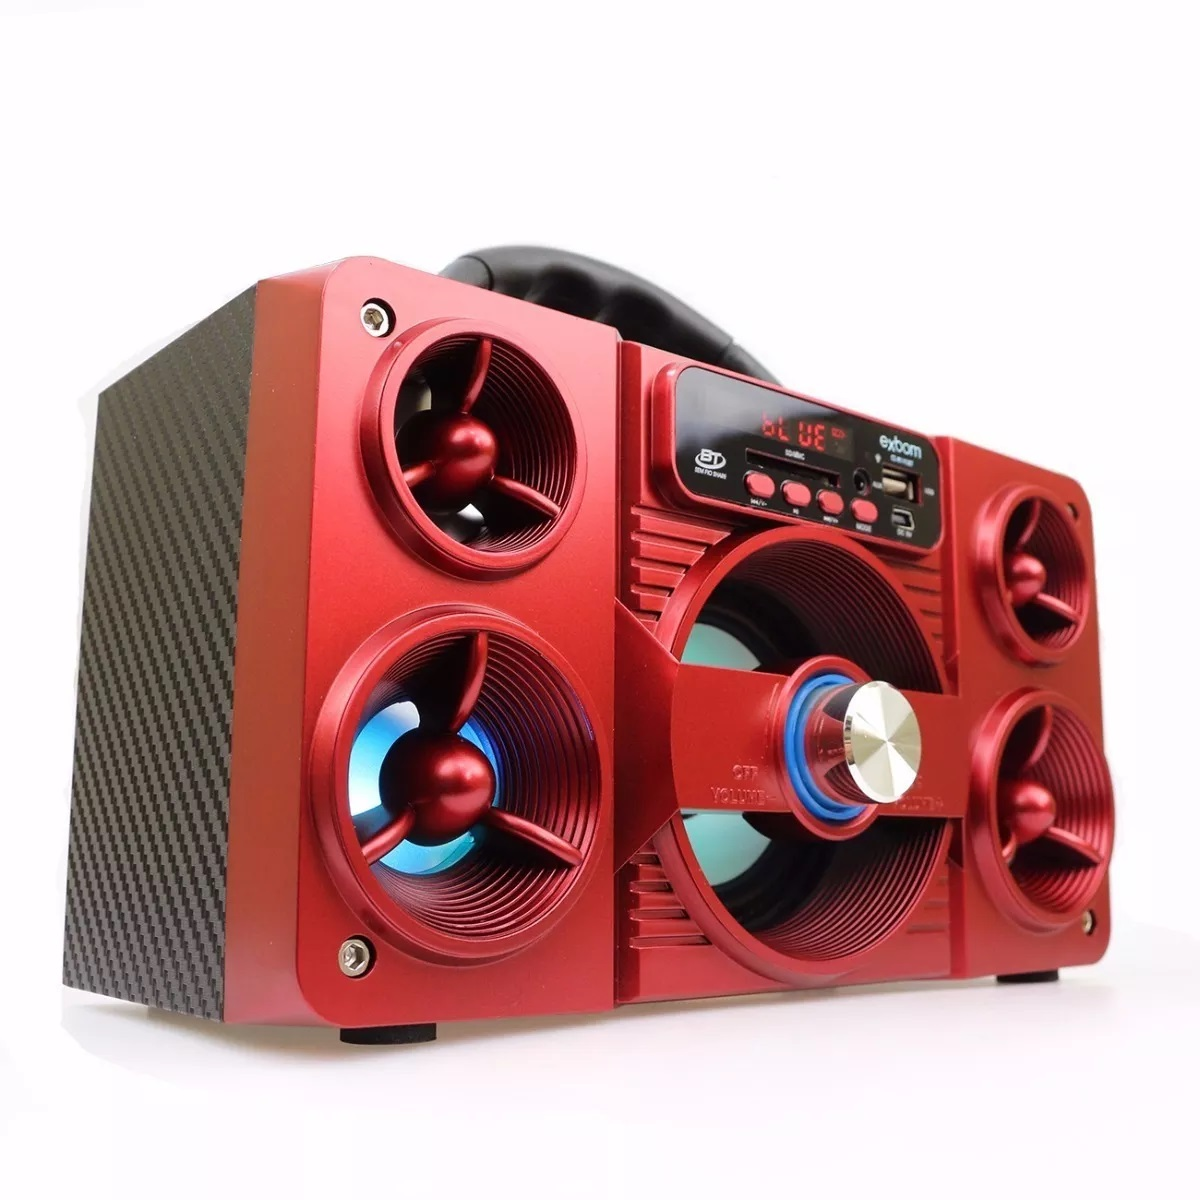 Caixa De Som Bluetooth Radio / Sd / Usb 5w Super Bass Vemelho Exbom